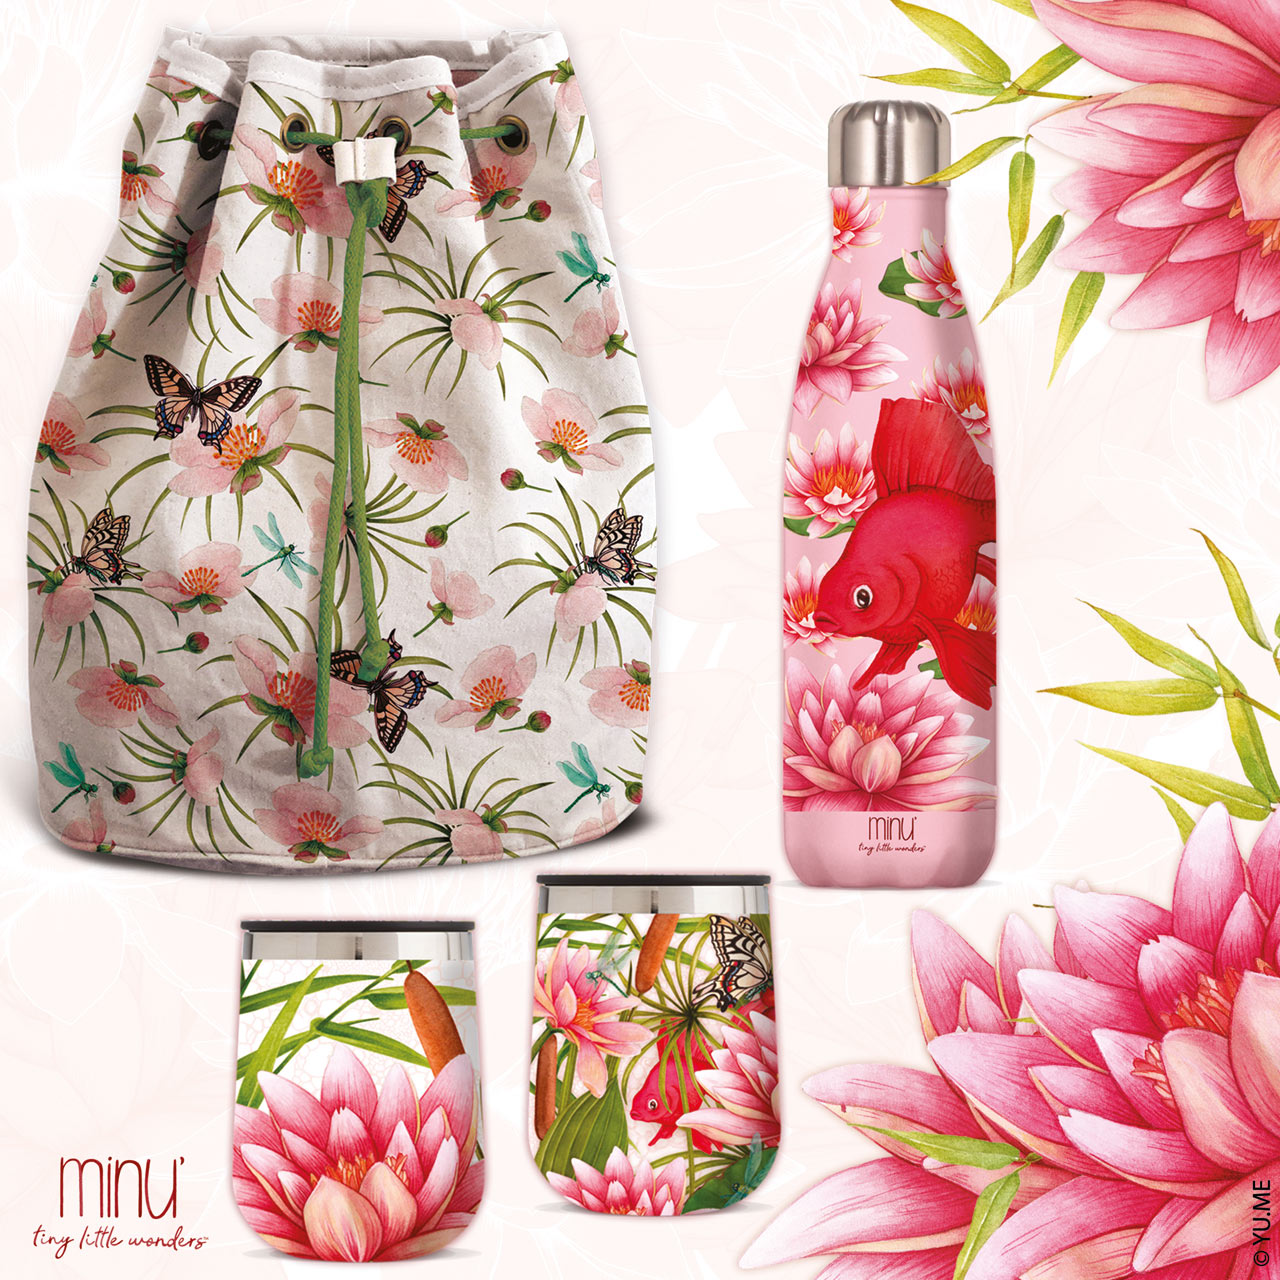 yume nature bags and water bottles